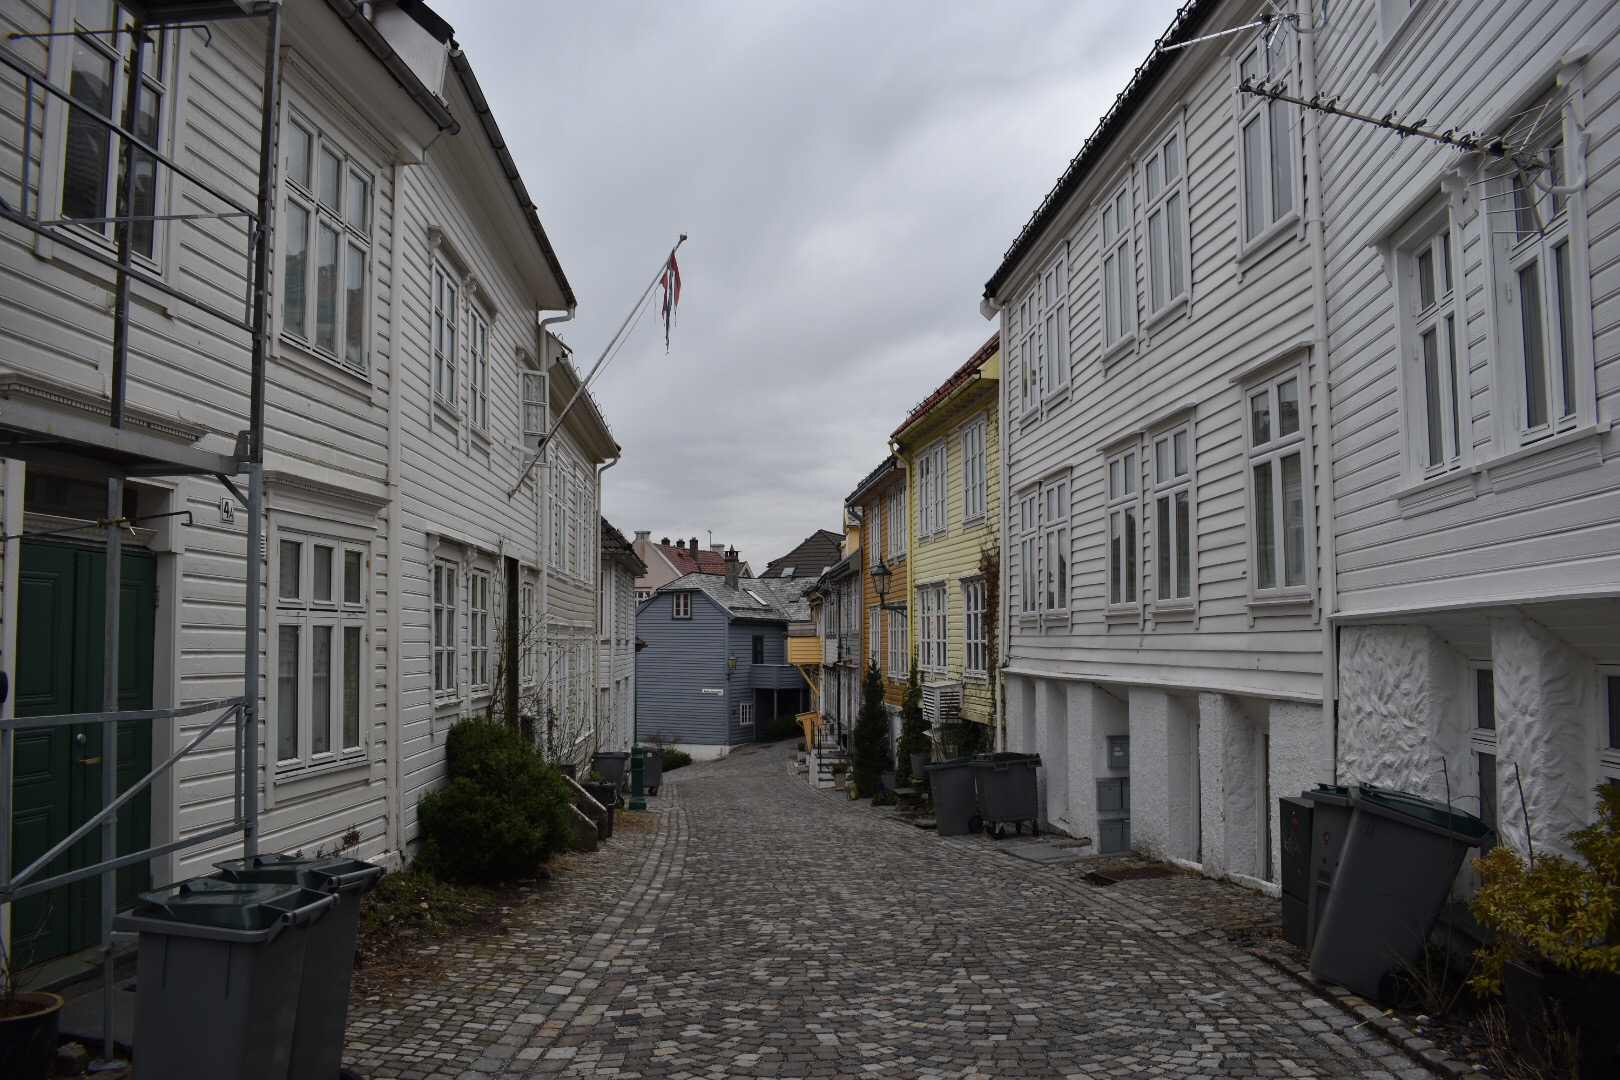 Walking In Search Of Colourful Houses in Bergen, Norway